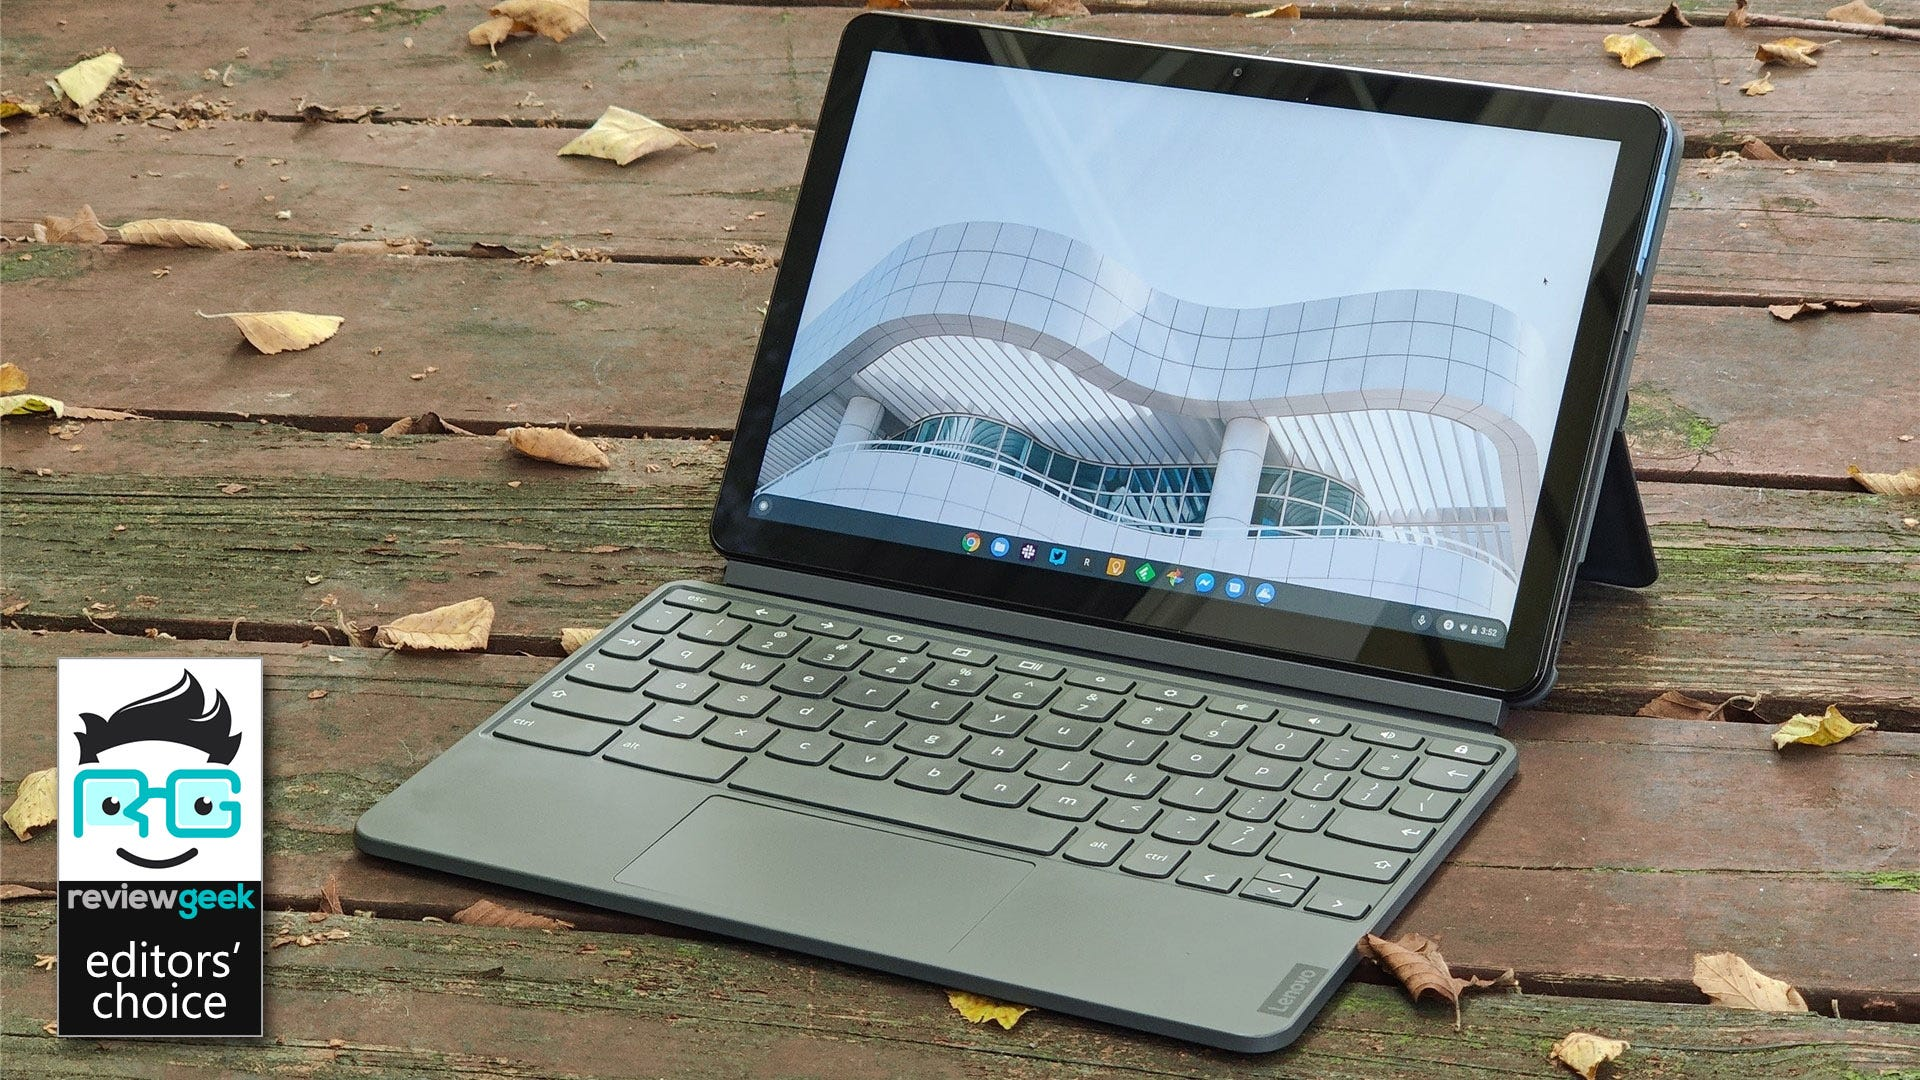 The Lenovo IdeadPad Duet on a wooden deck with leaves all around